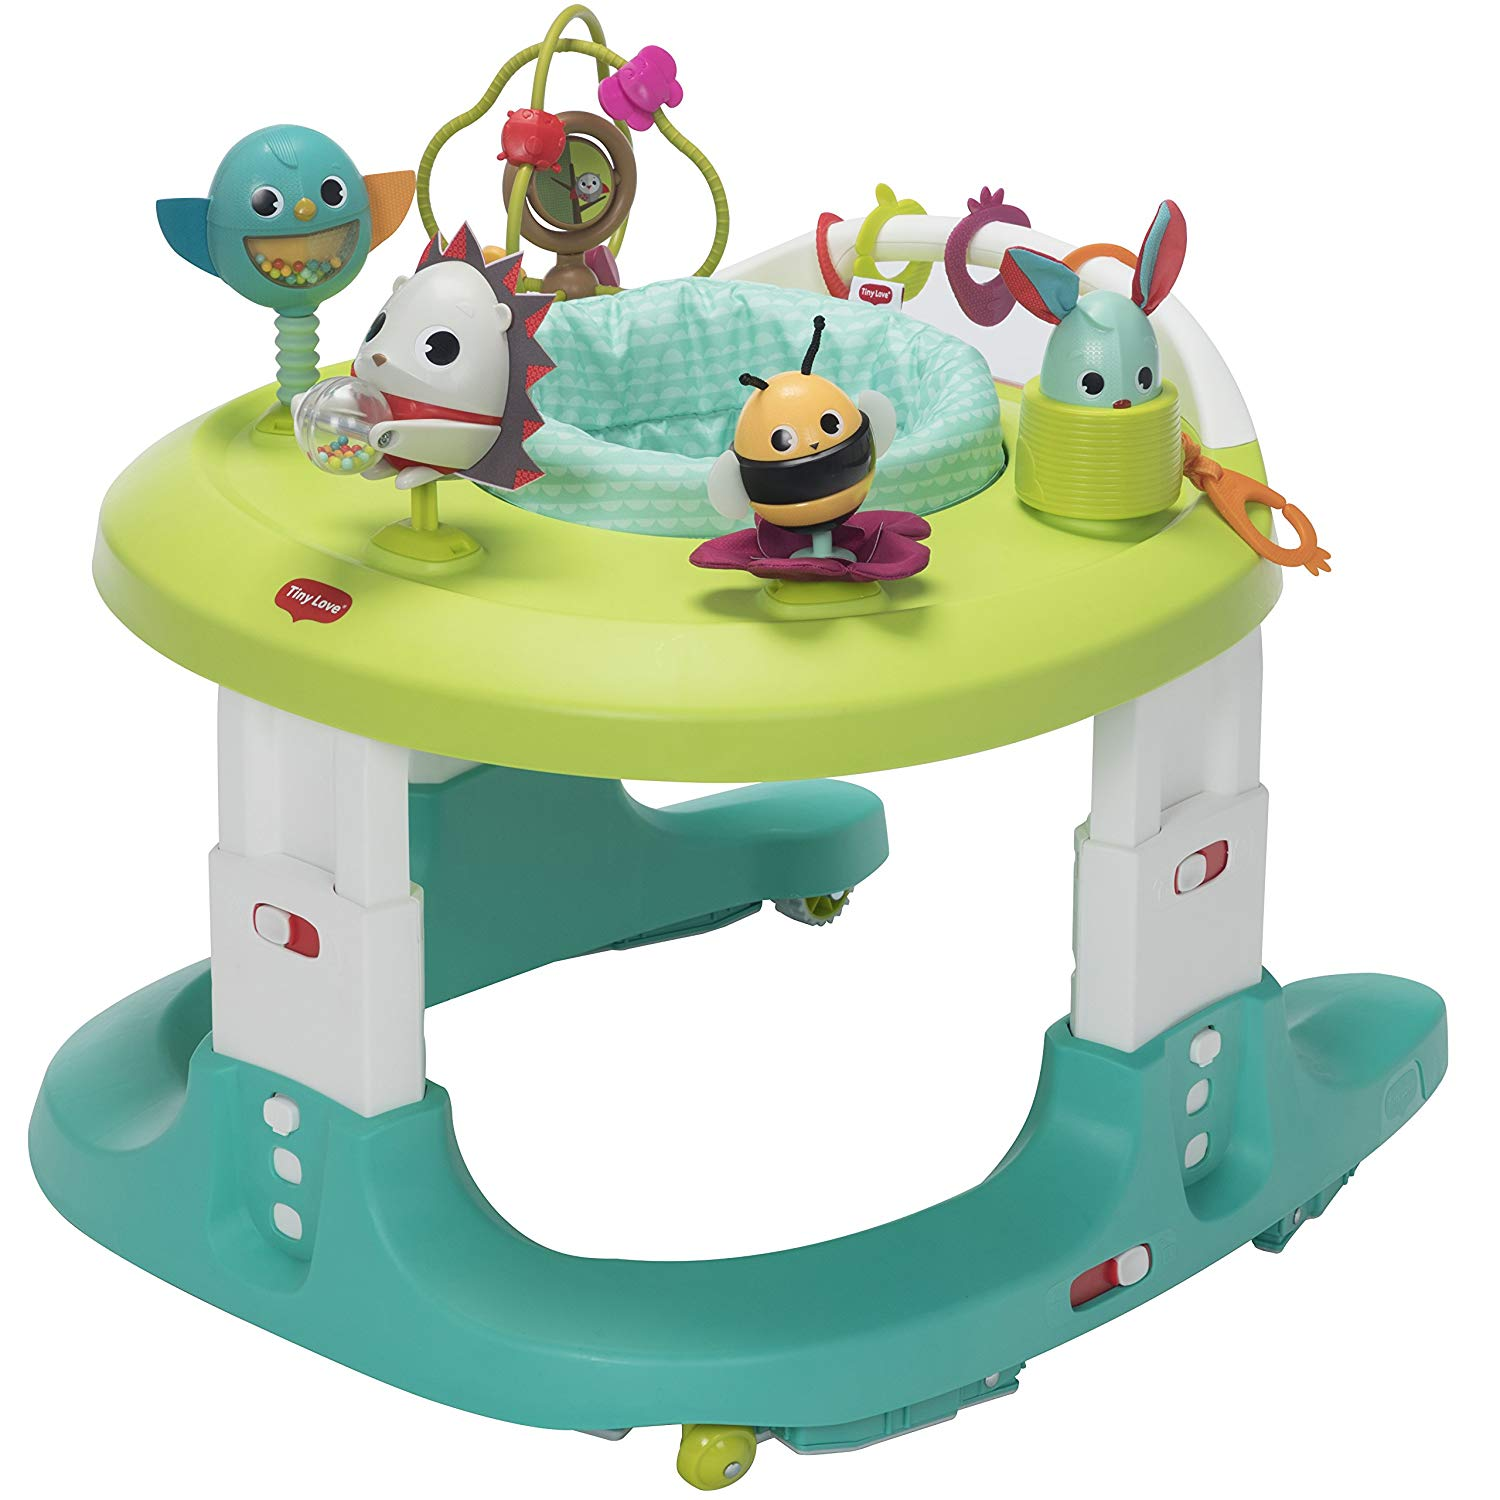 Tiny Love Black & White Here I Grow 4-in-1 Walker & Mobile Activity Center, Magical Tales